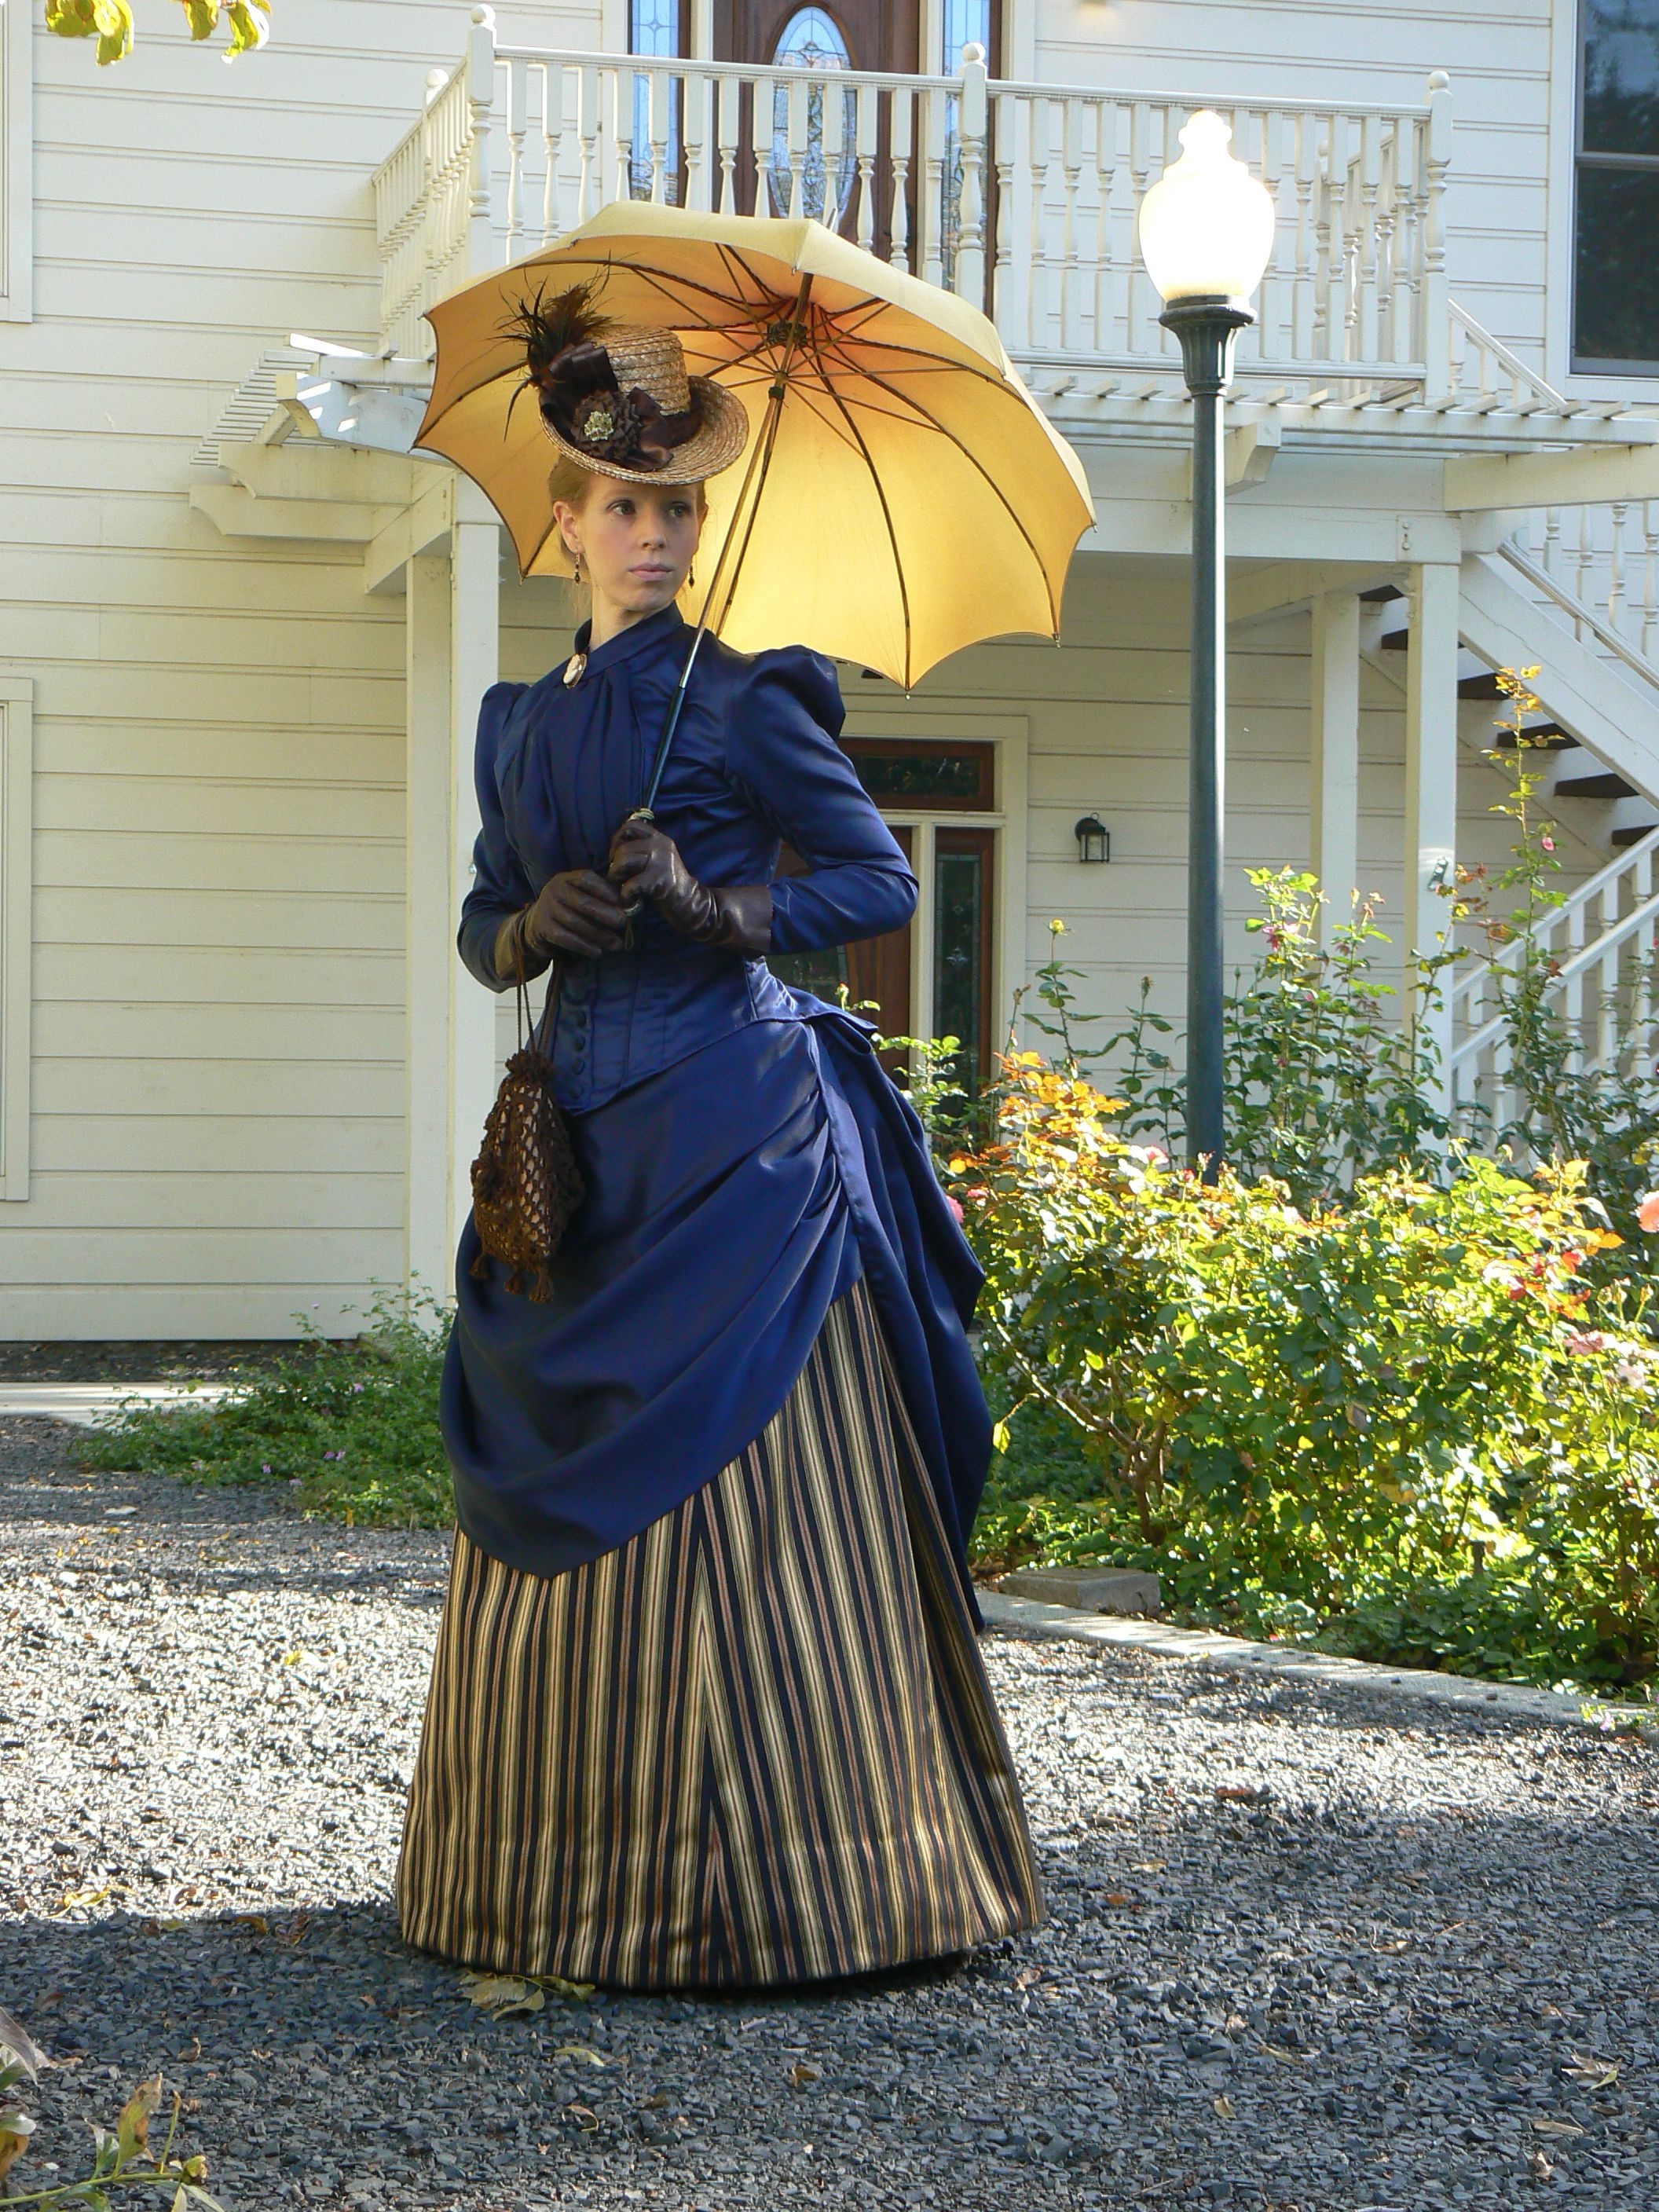 1887 Victorian Bustle Dress And Parasol Stansbury House 2017